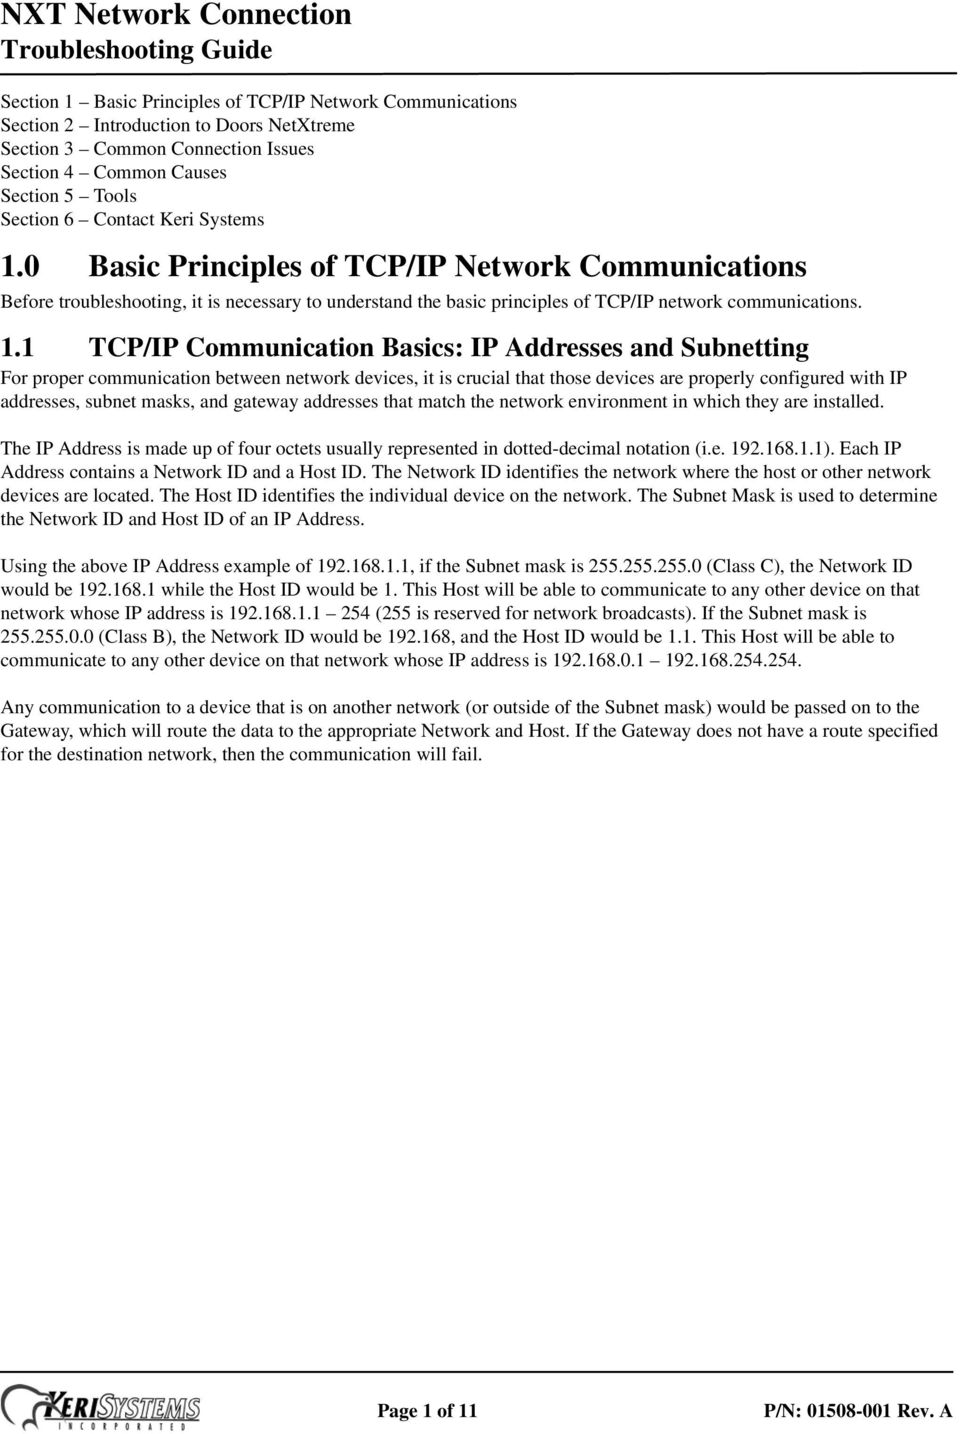 0 Basic Principles of TCP/IP Network Communications Before troubleshooting, it is necessary to understand the basic principles of TCP/IP network communications. 1.